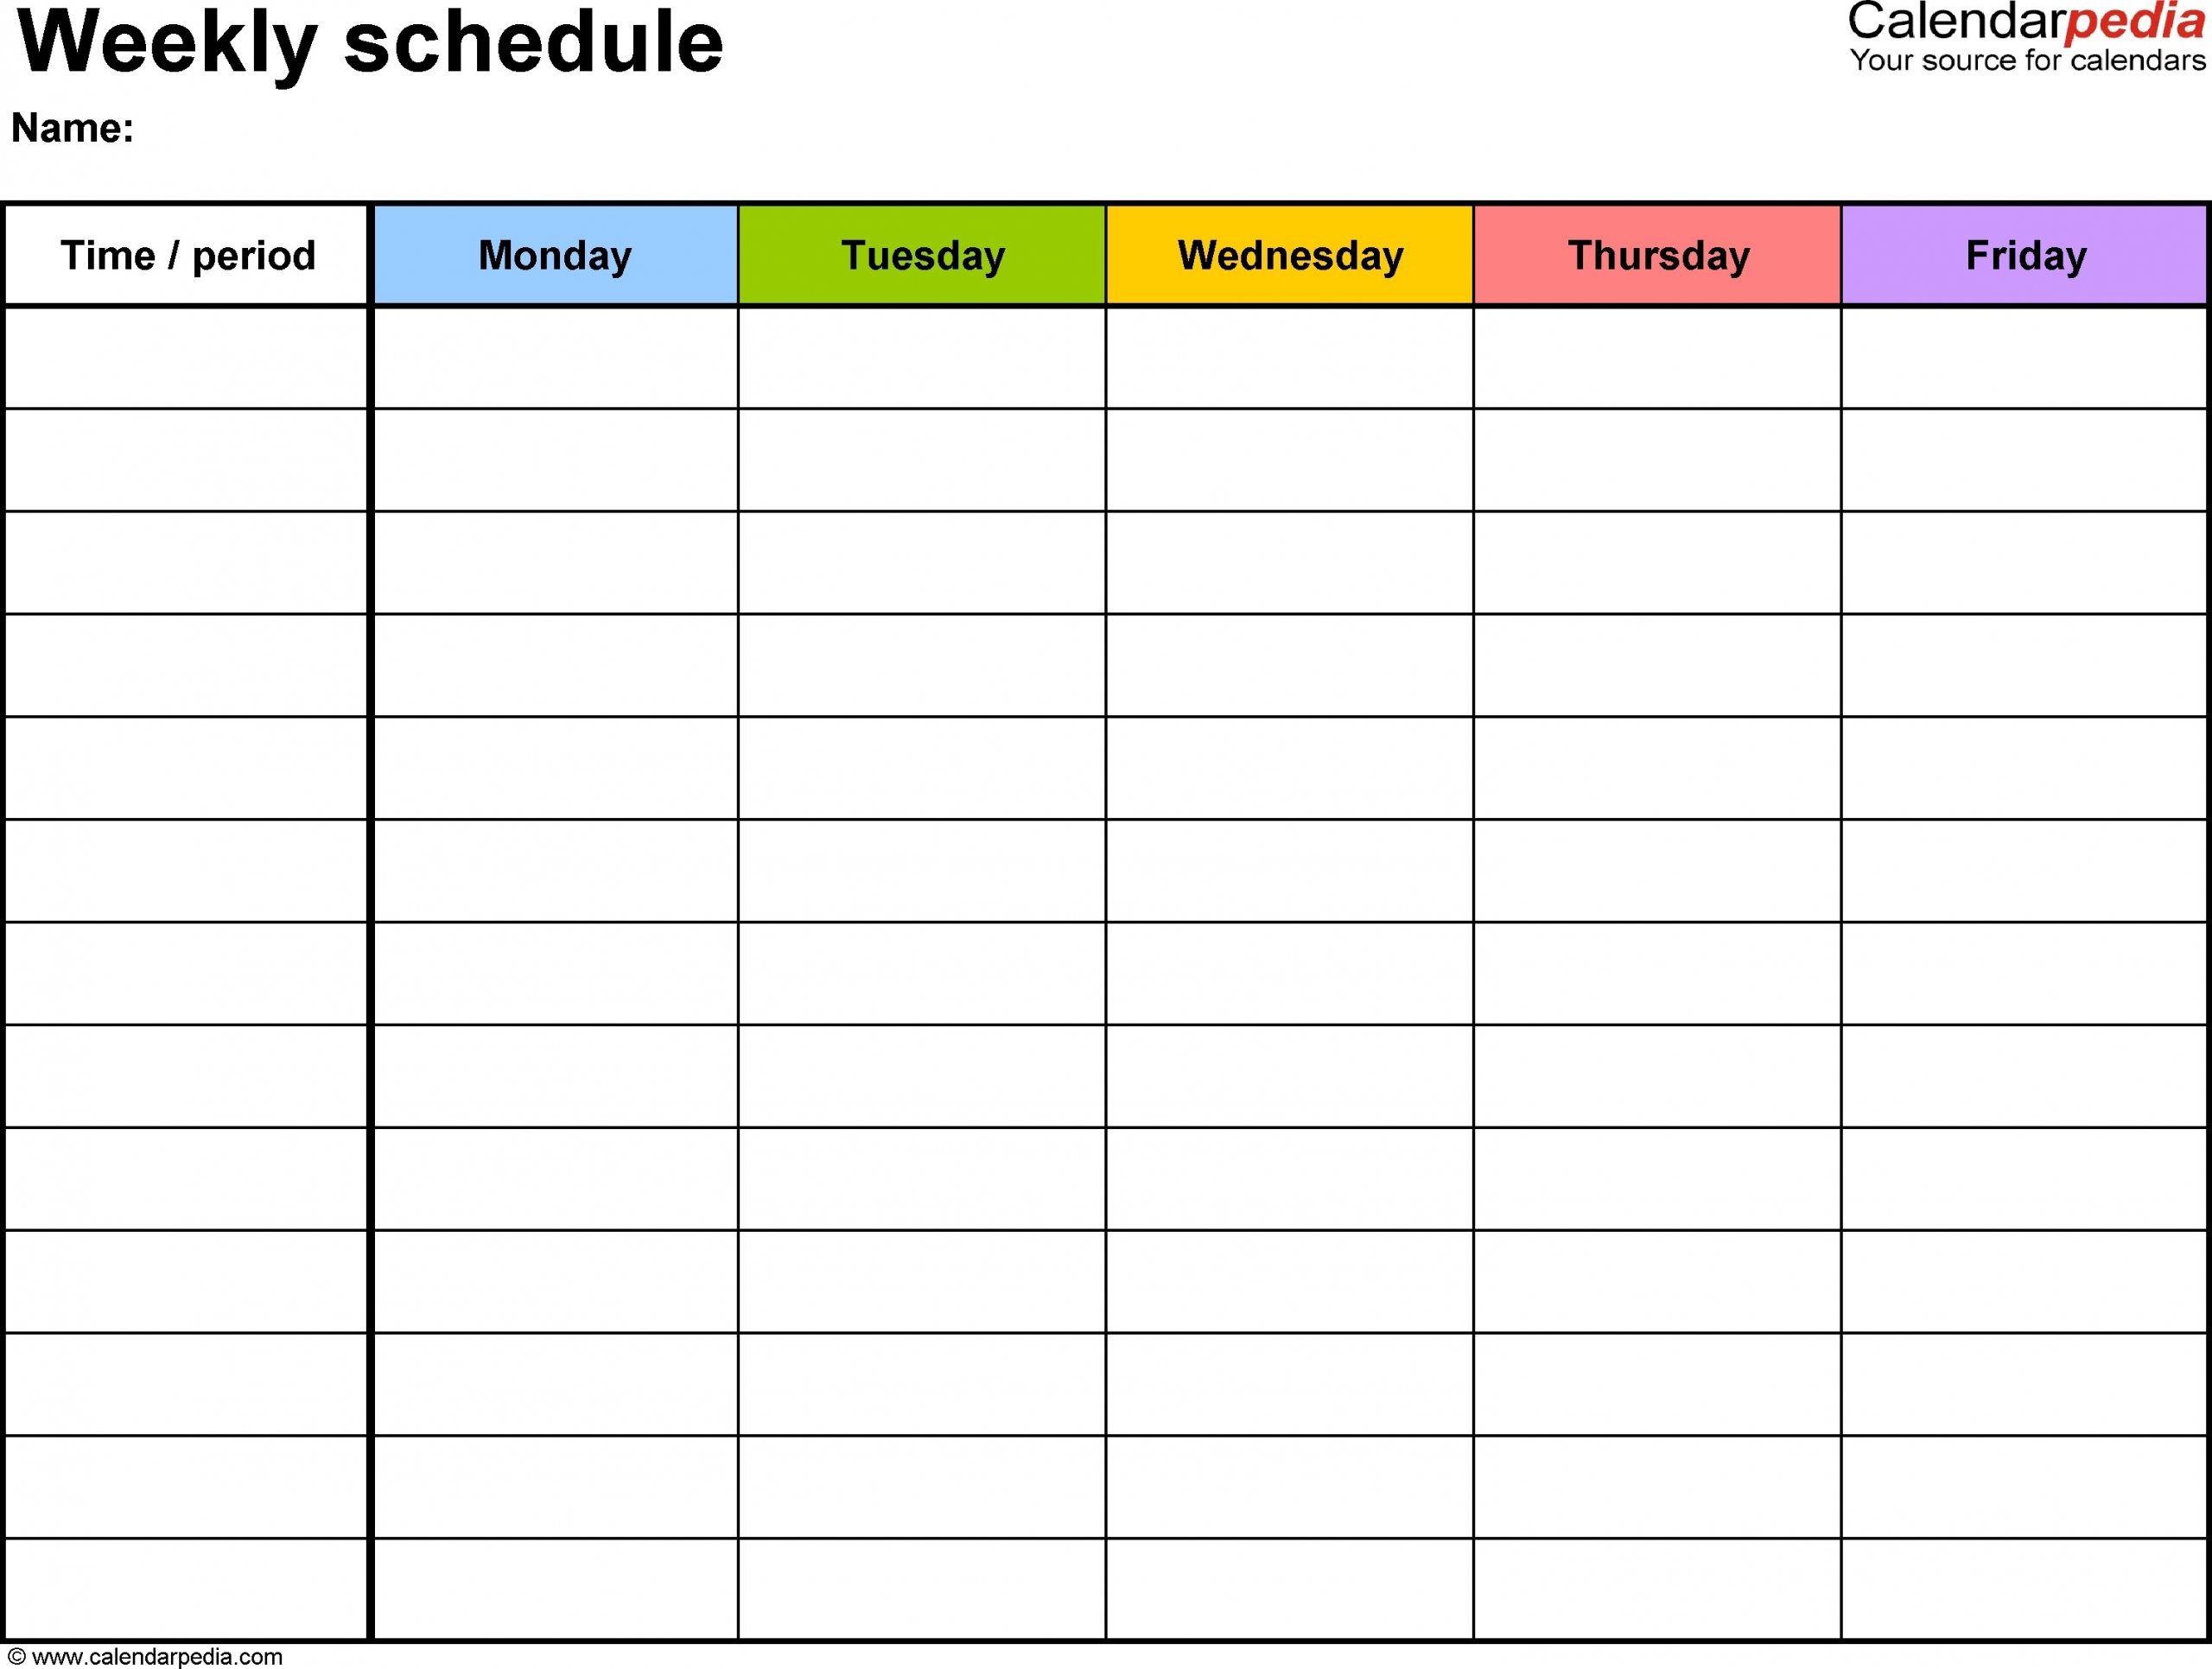 Printable Calendar With Time Slots | Ten Free Printable Weekly Calendar Printable With Time Slots